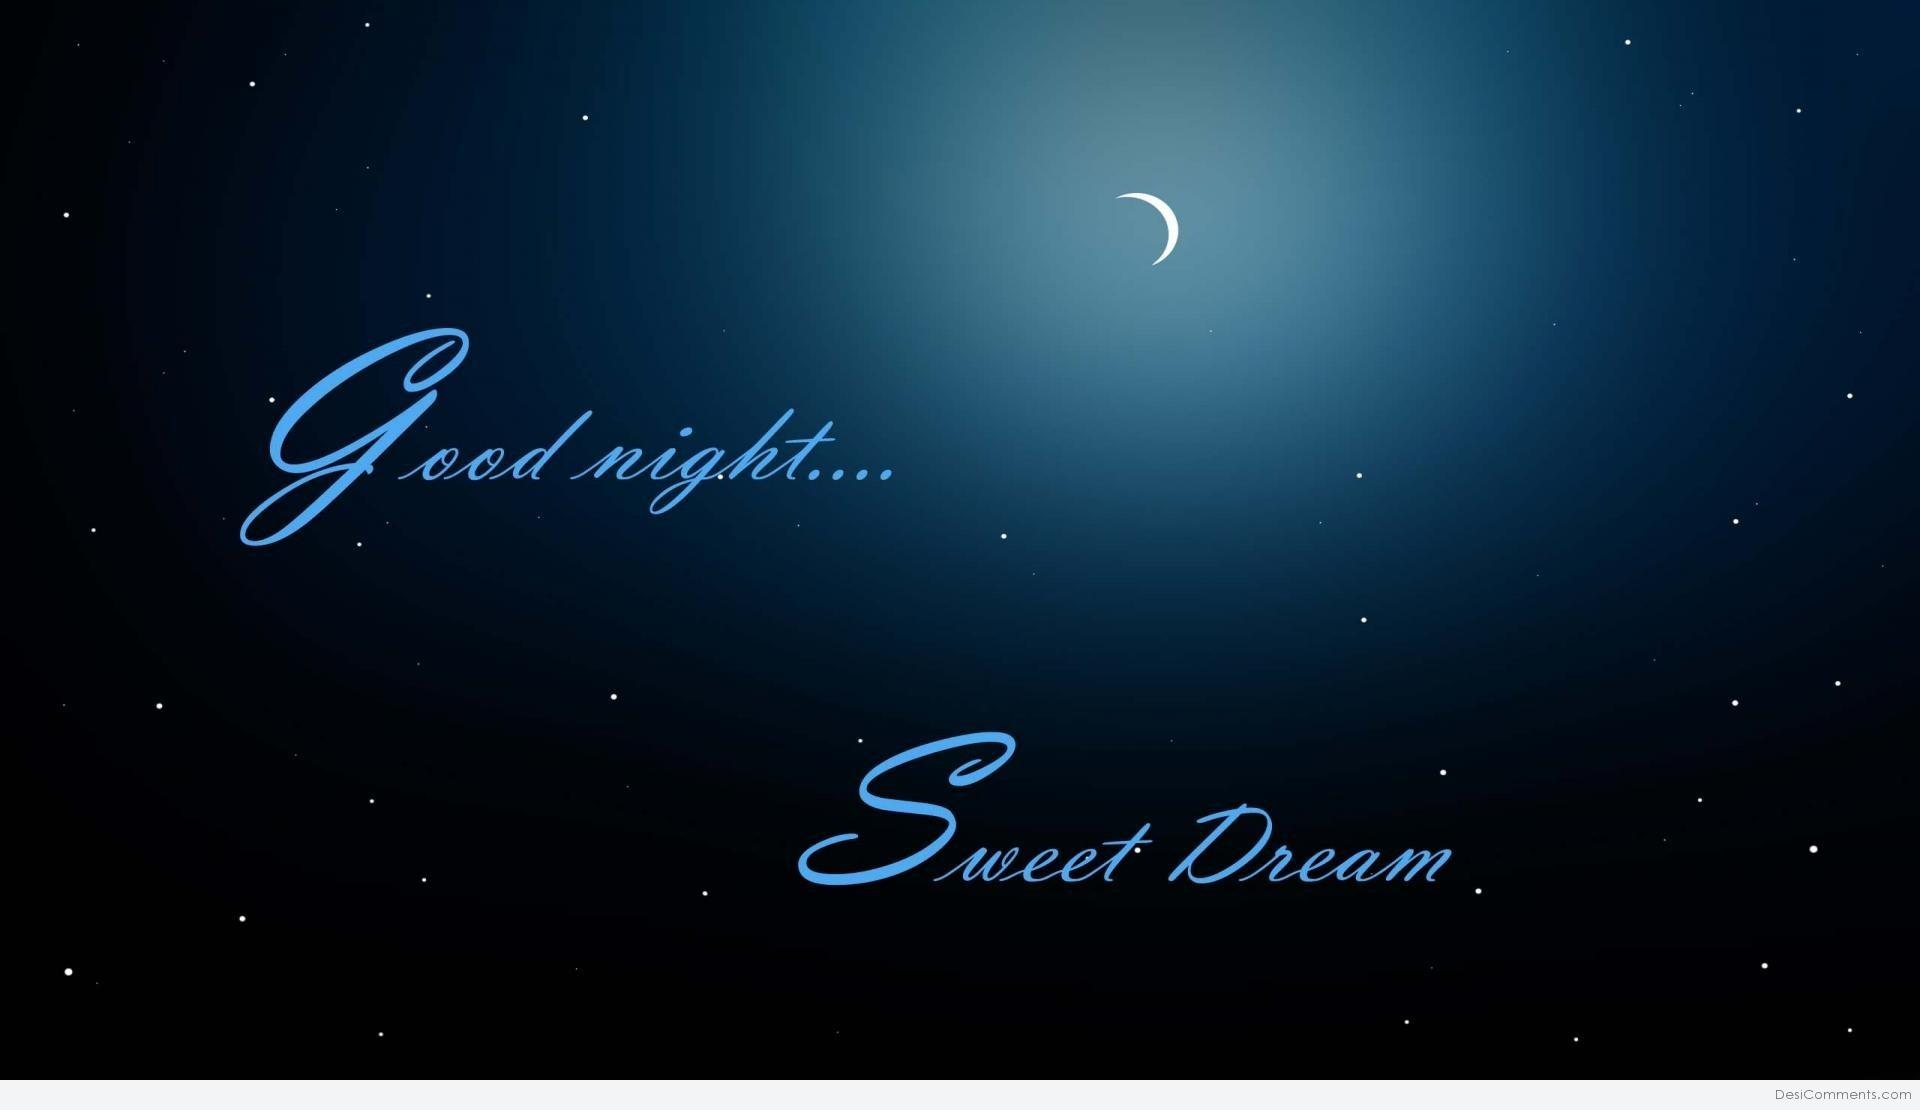 Good Night Sweet Dreams - DesiComments.com